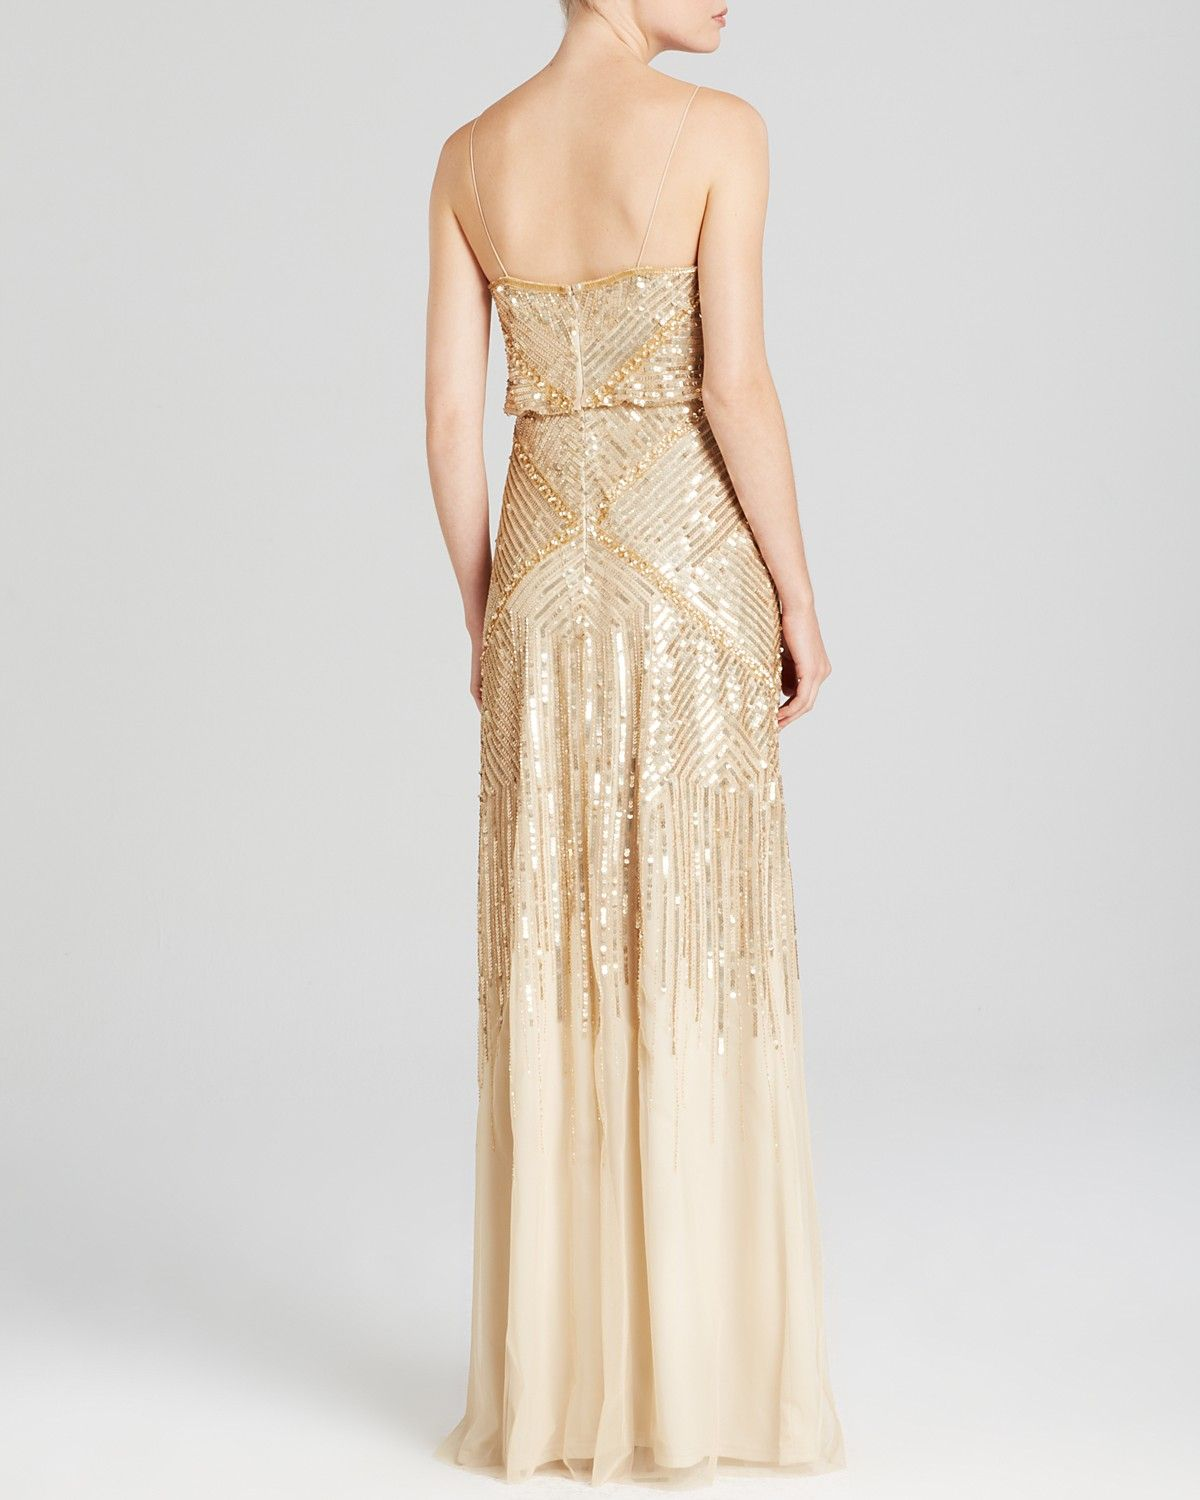 Adrianna Papell Sleeveless Beaded Blouson Gown - Bloomingdale\'s ...